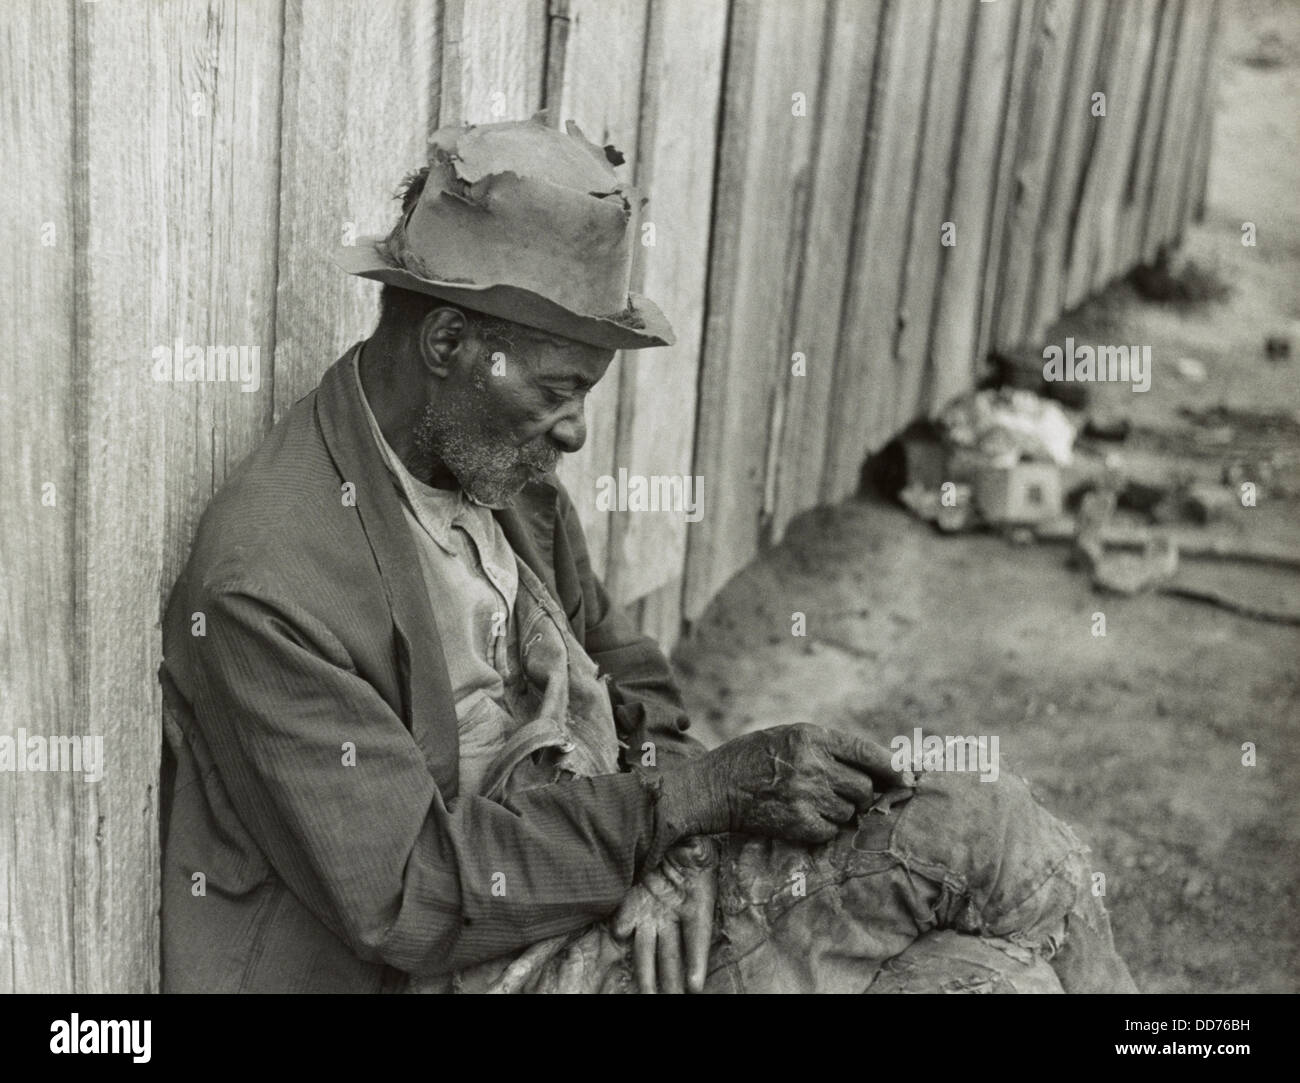 african american man with missing fingers wearing tattered clothing